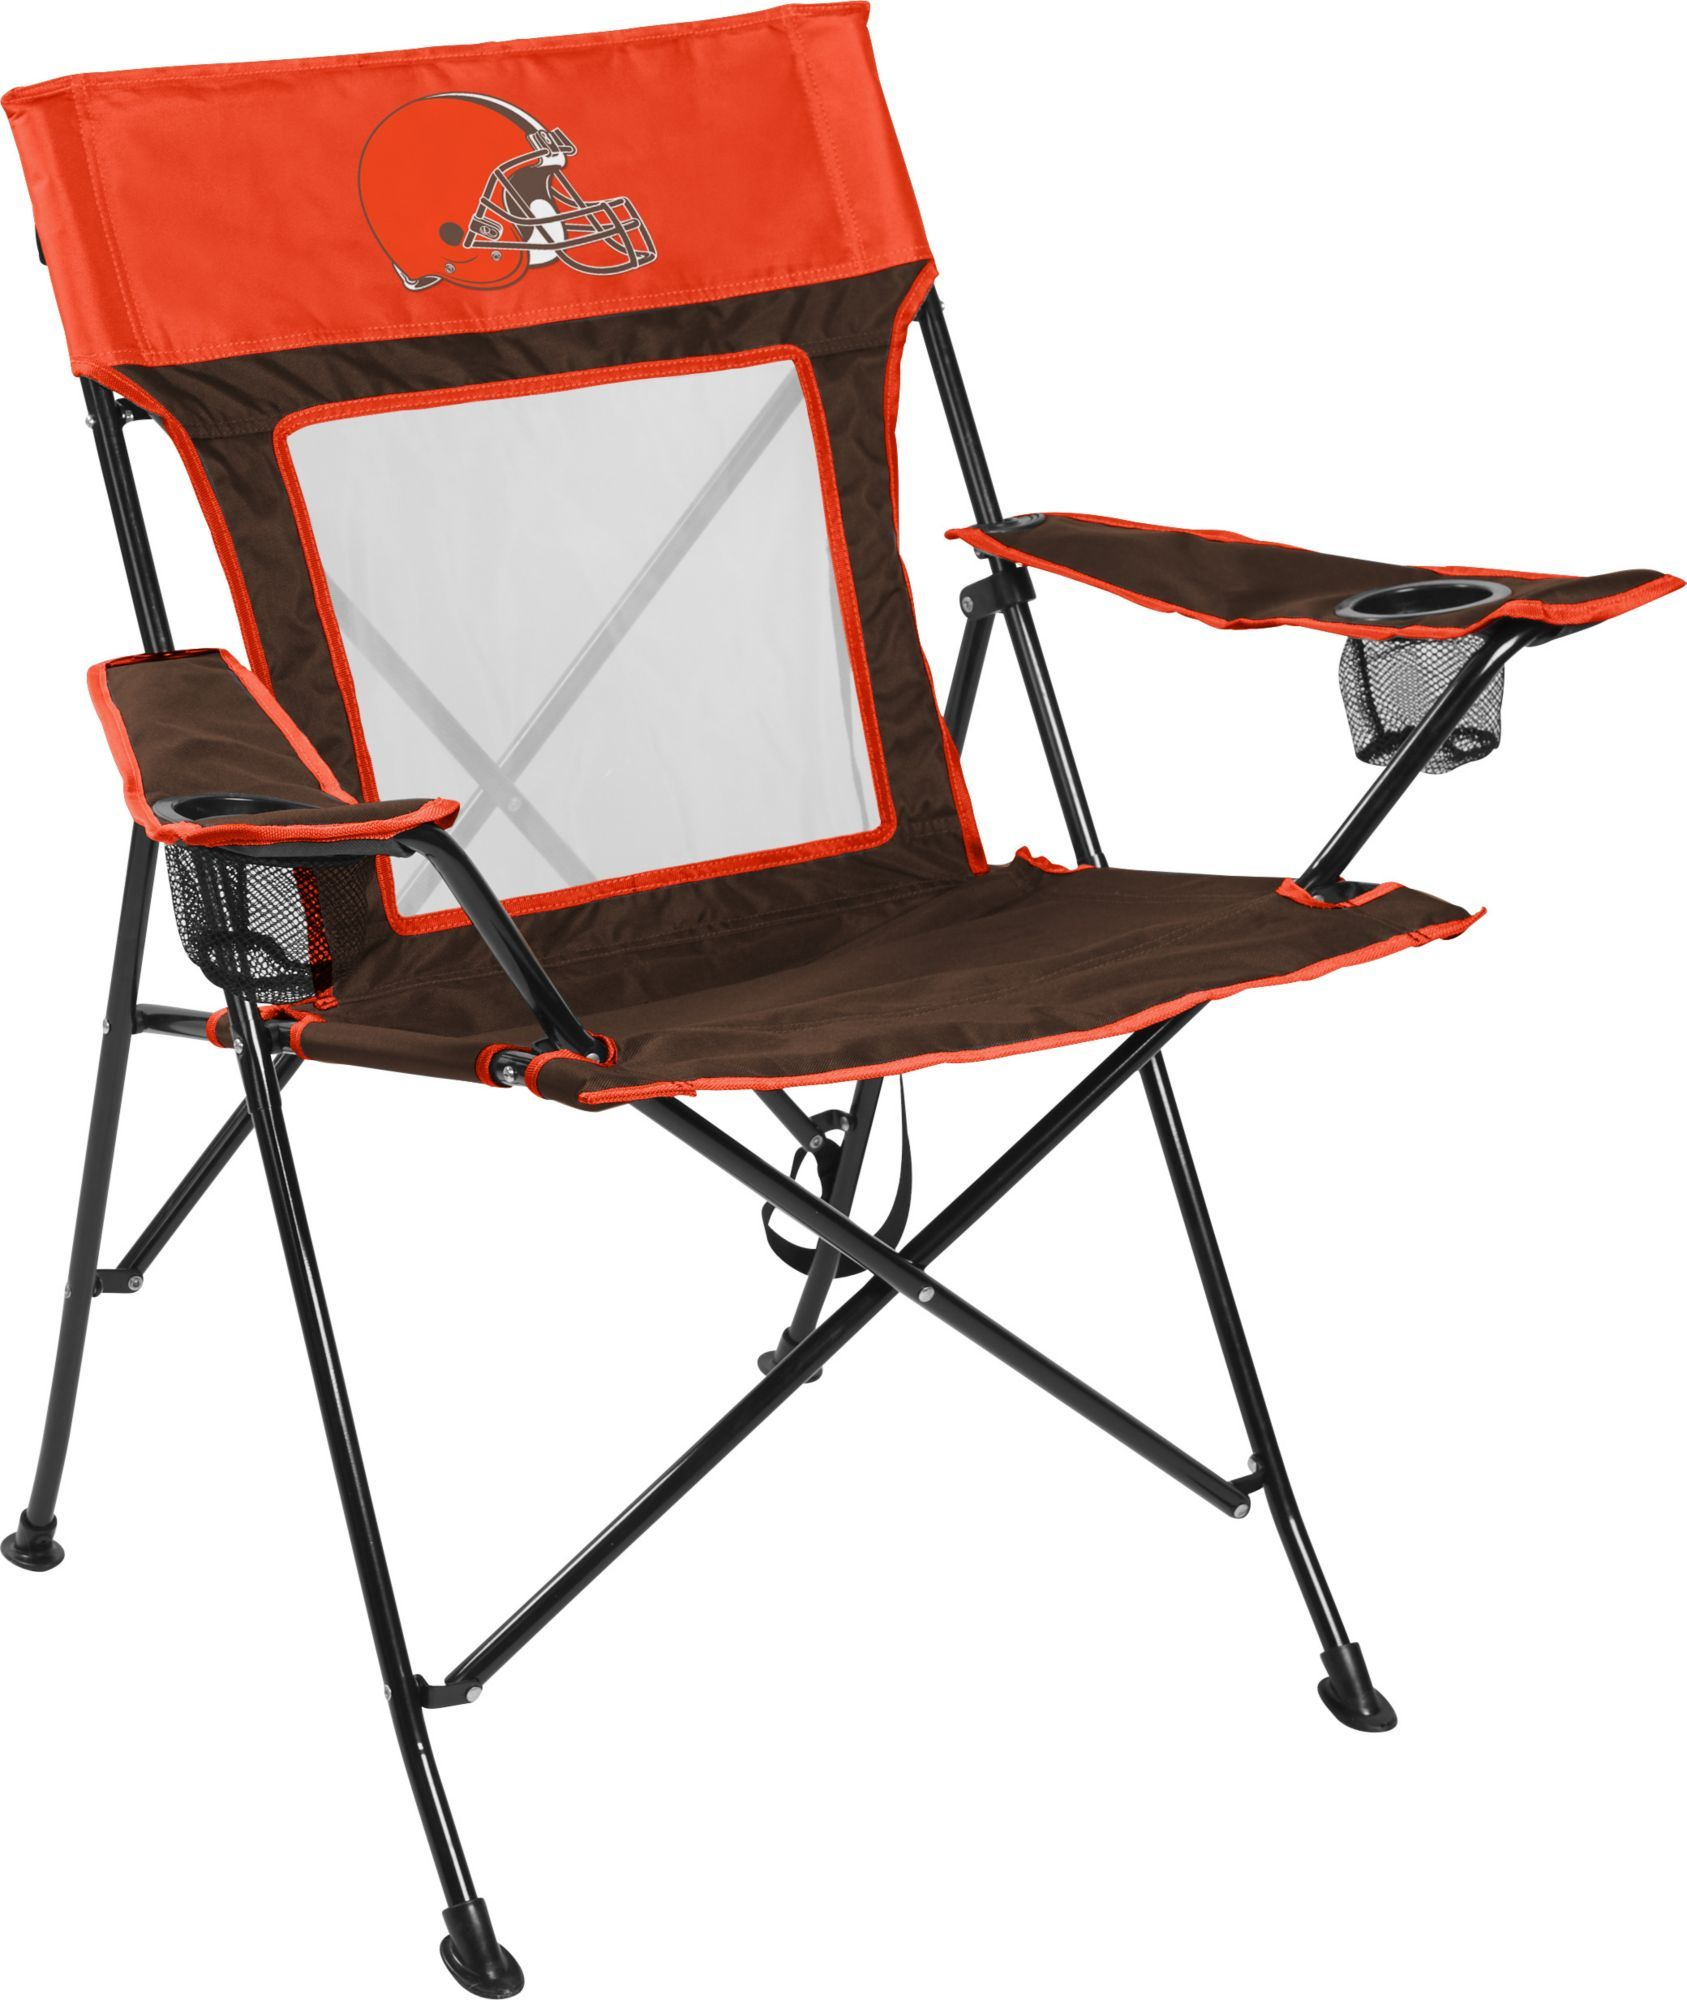 Rawlings Cleveland Game Changer Chair Tailgate Chairs Chair